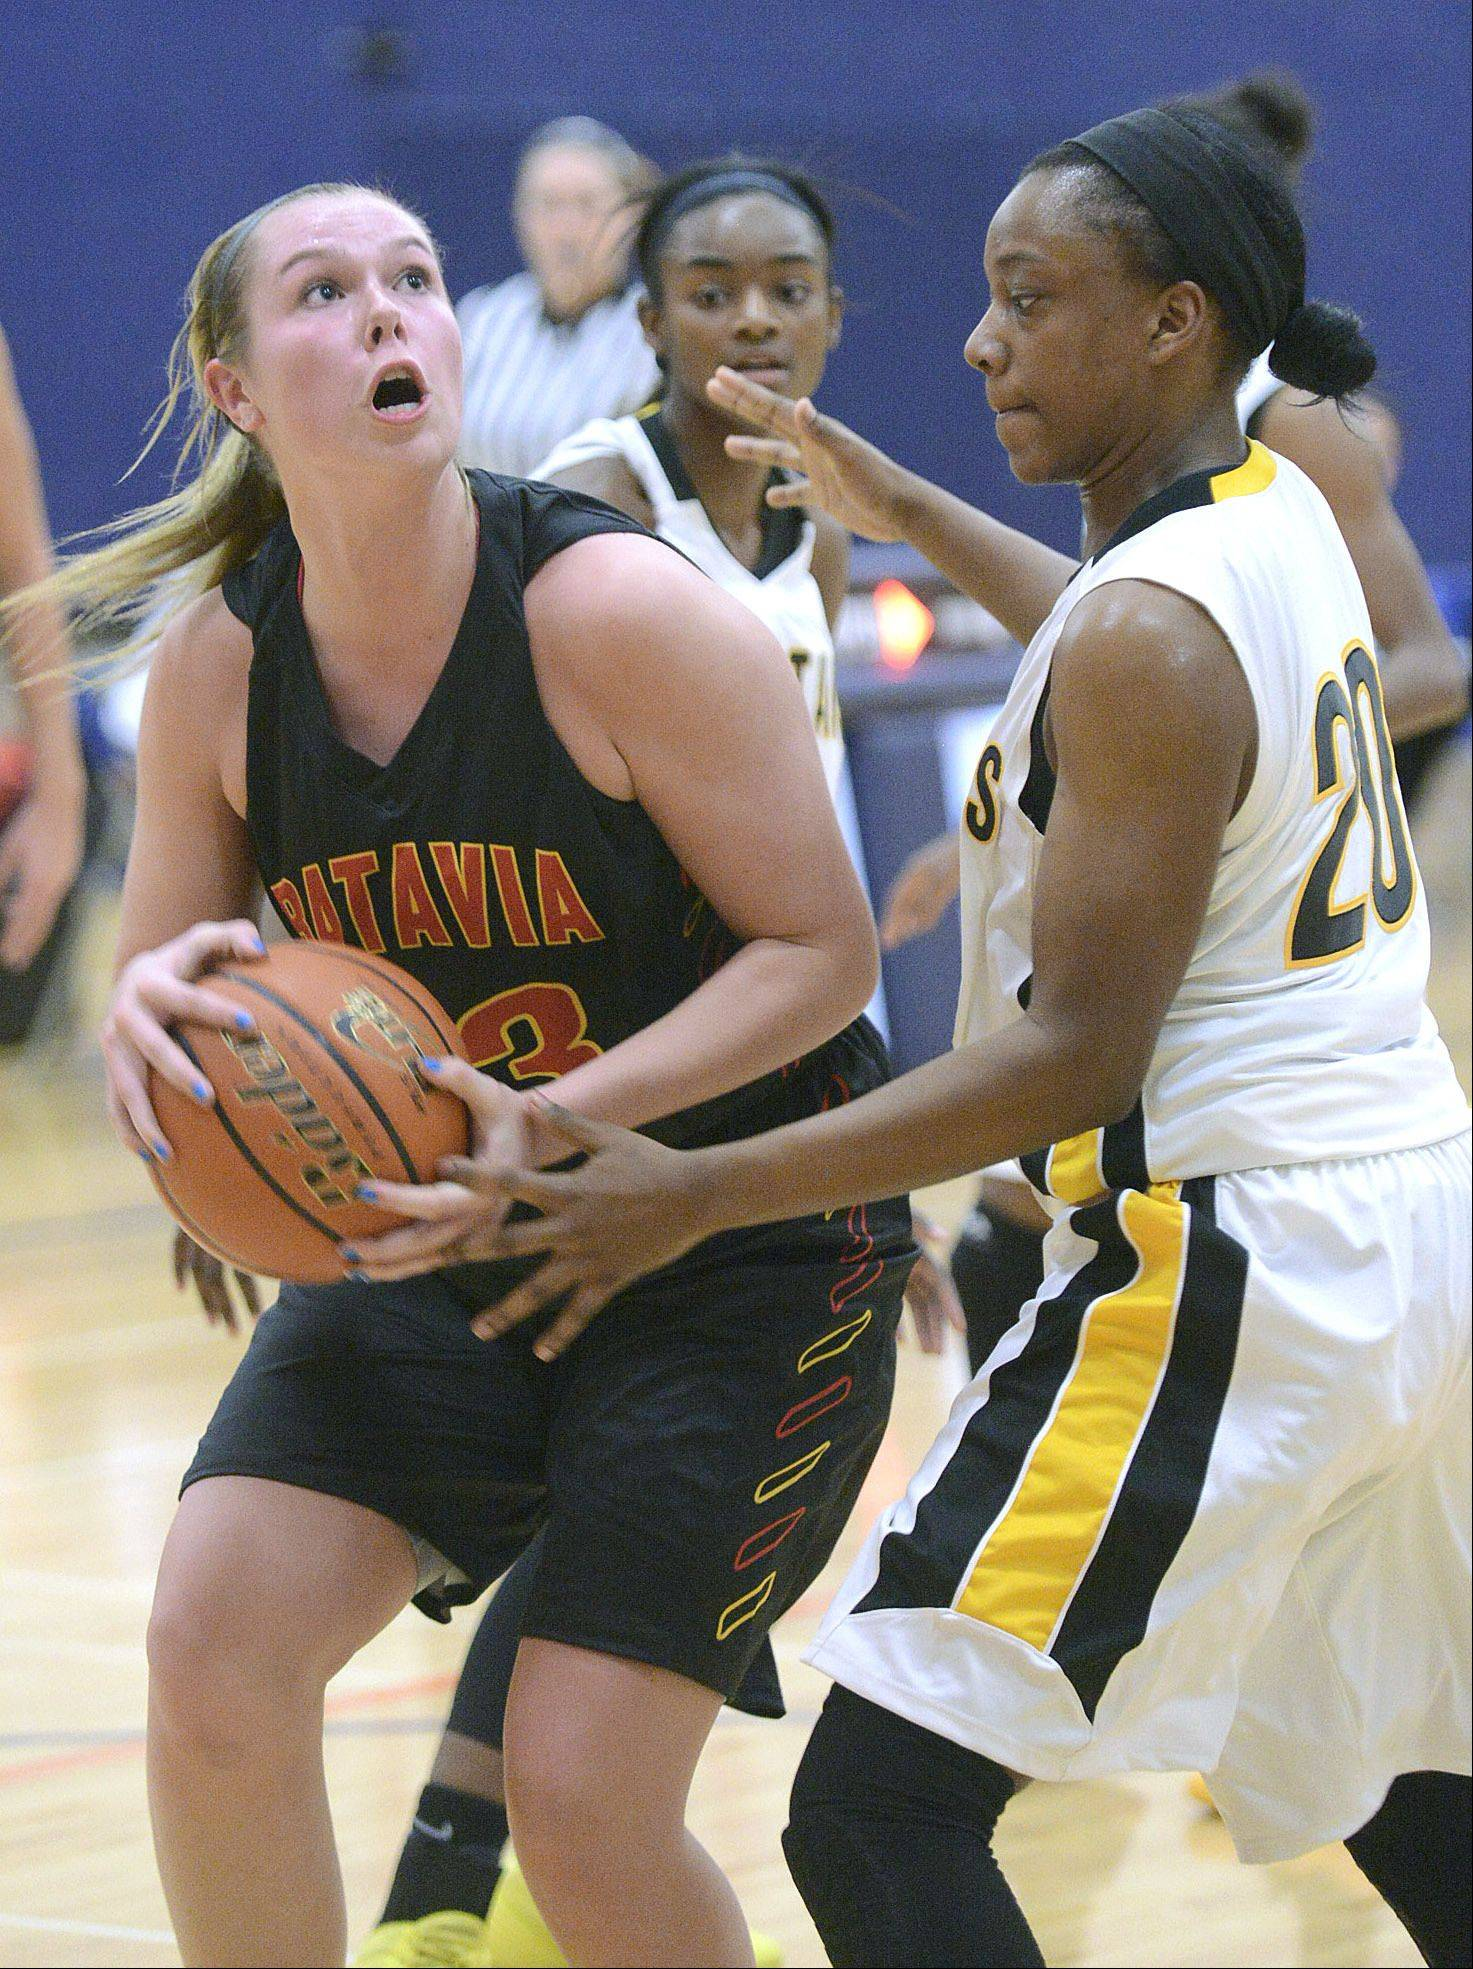 Batavia's Erin Bayram attempts a shot around Marian Catholic's Dajhae Mullins in the second quarter on Wednesday, December 18.